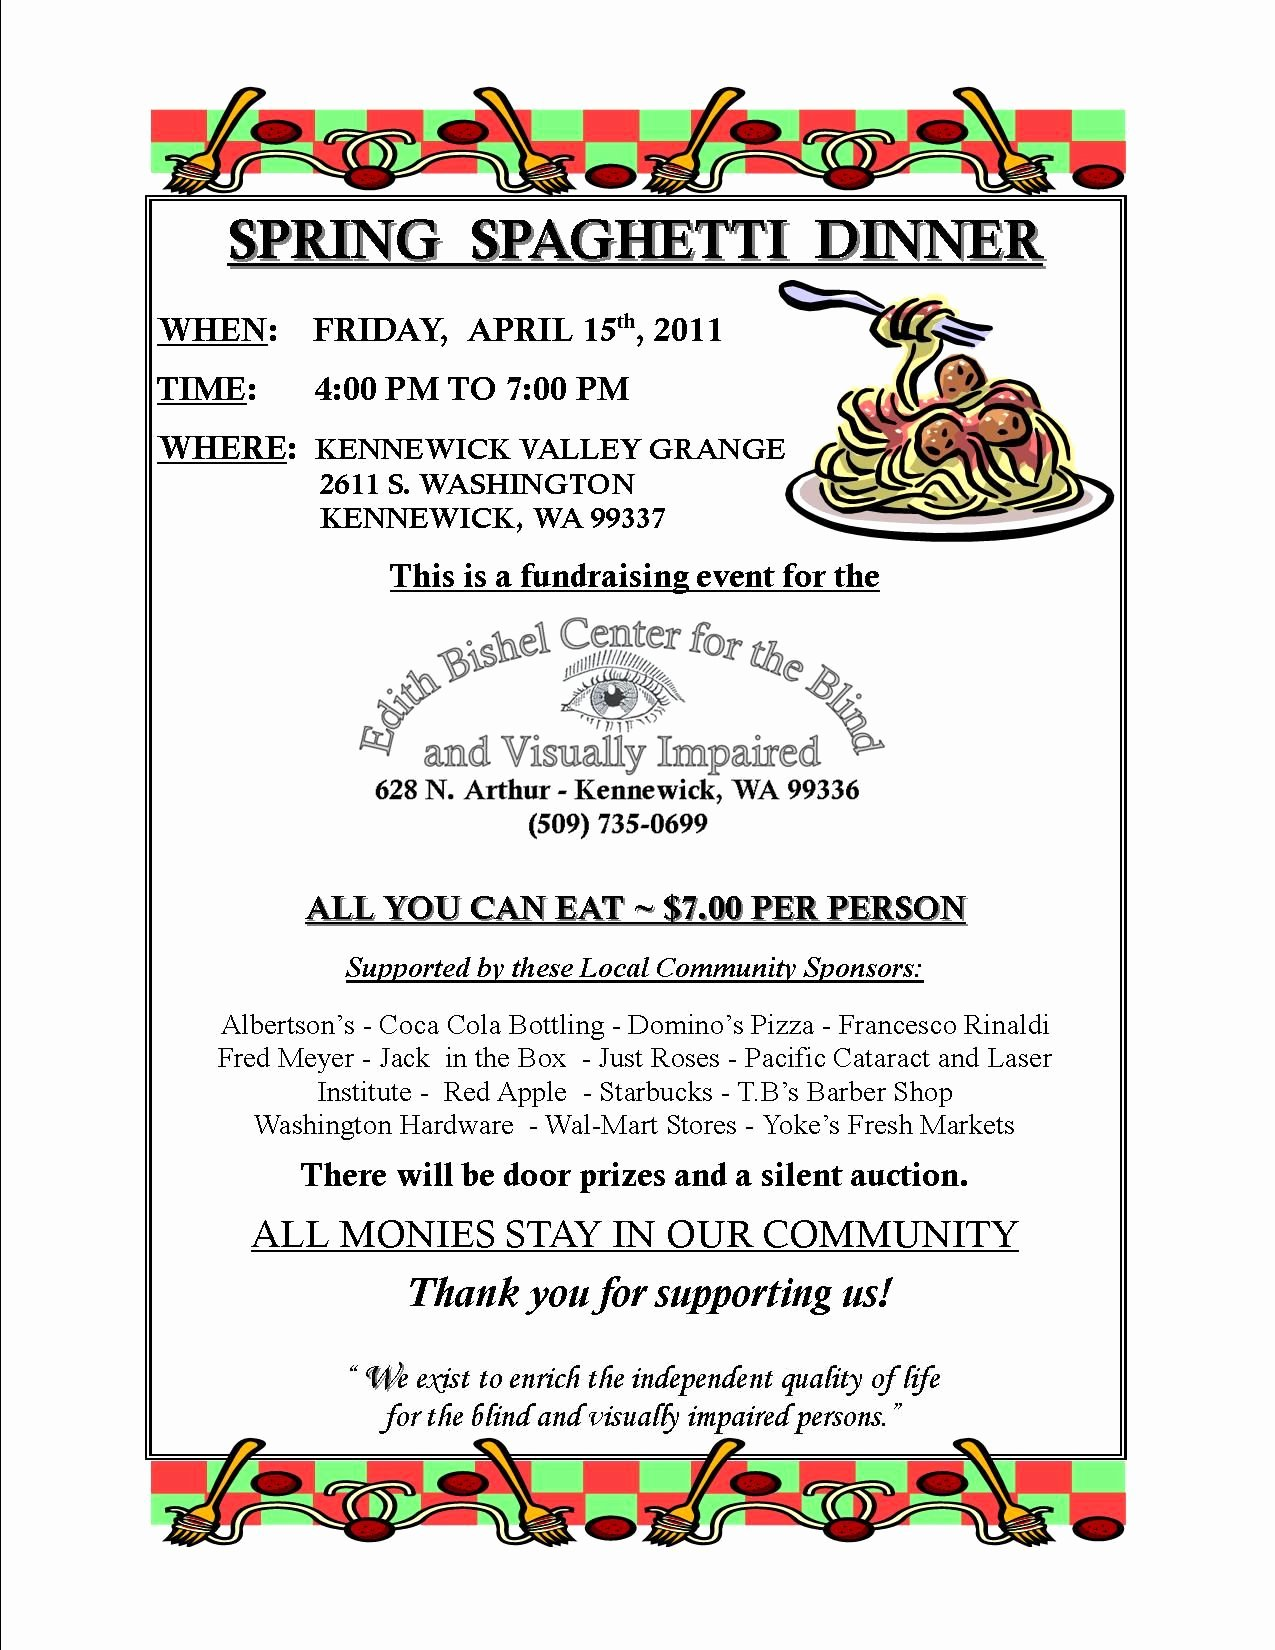 Dinner Fundraiser April 15 2011 Spring Spaghetti Dinner